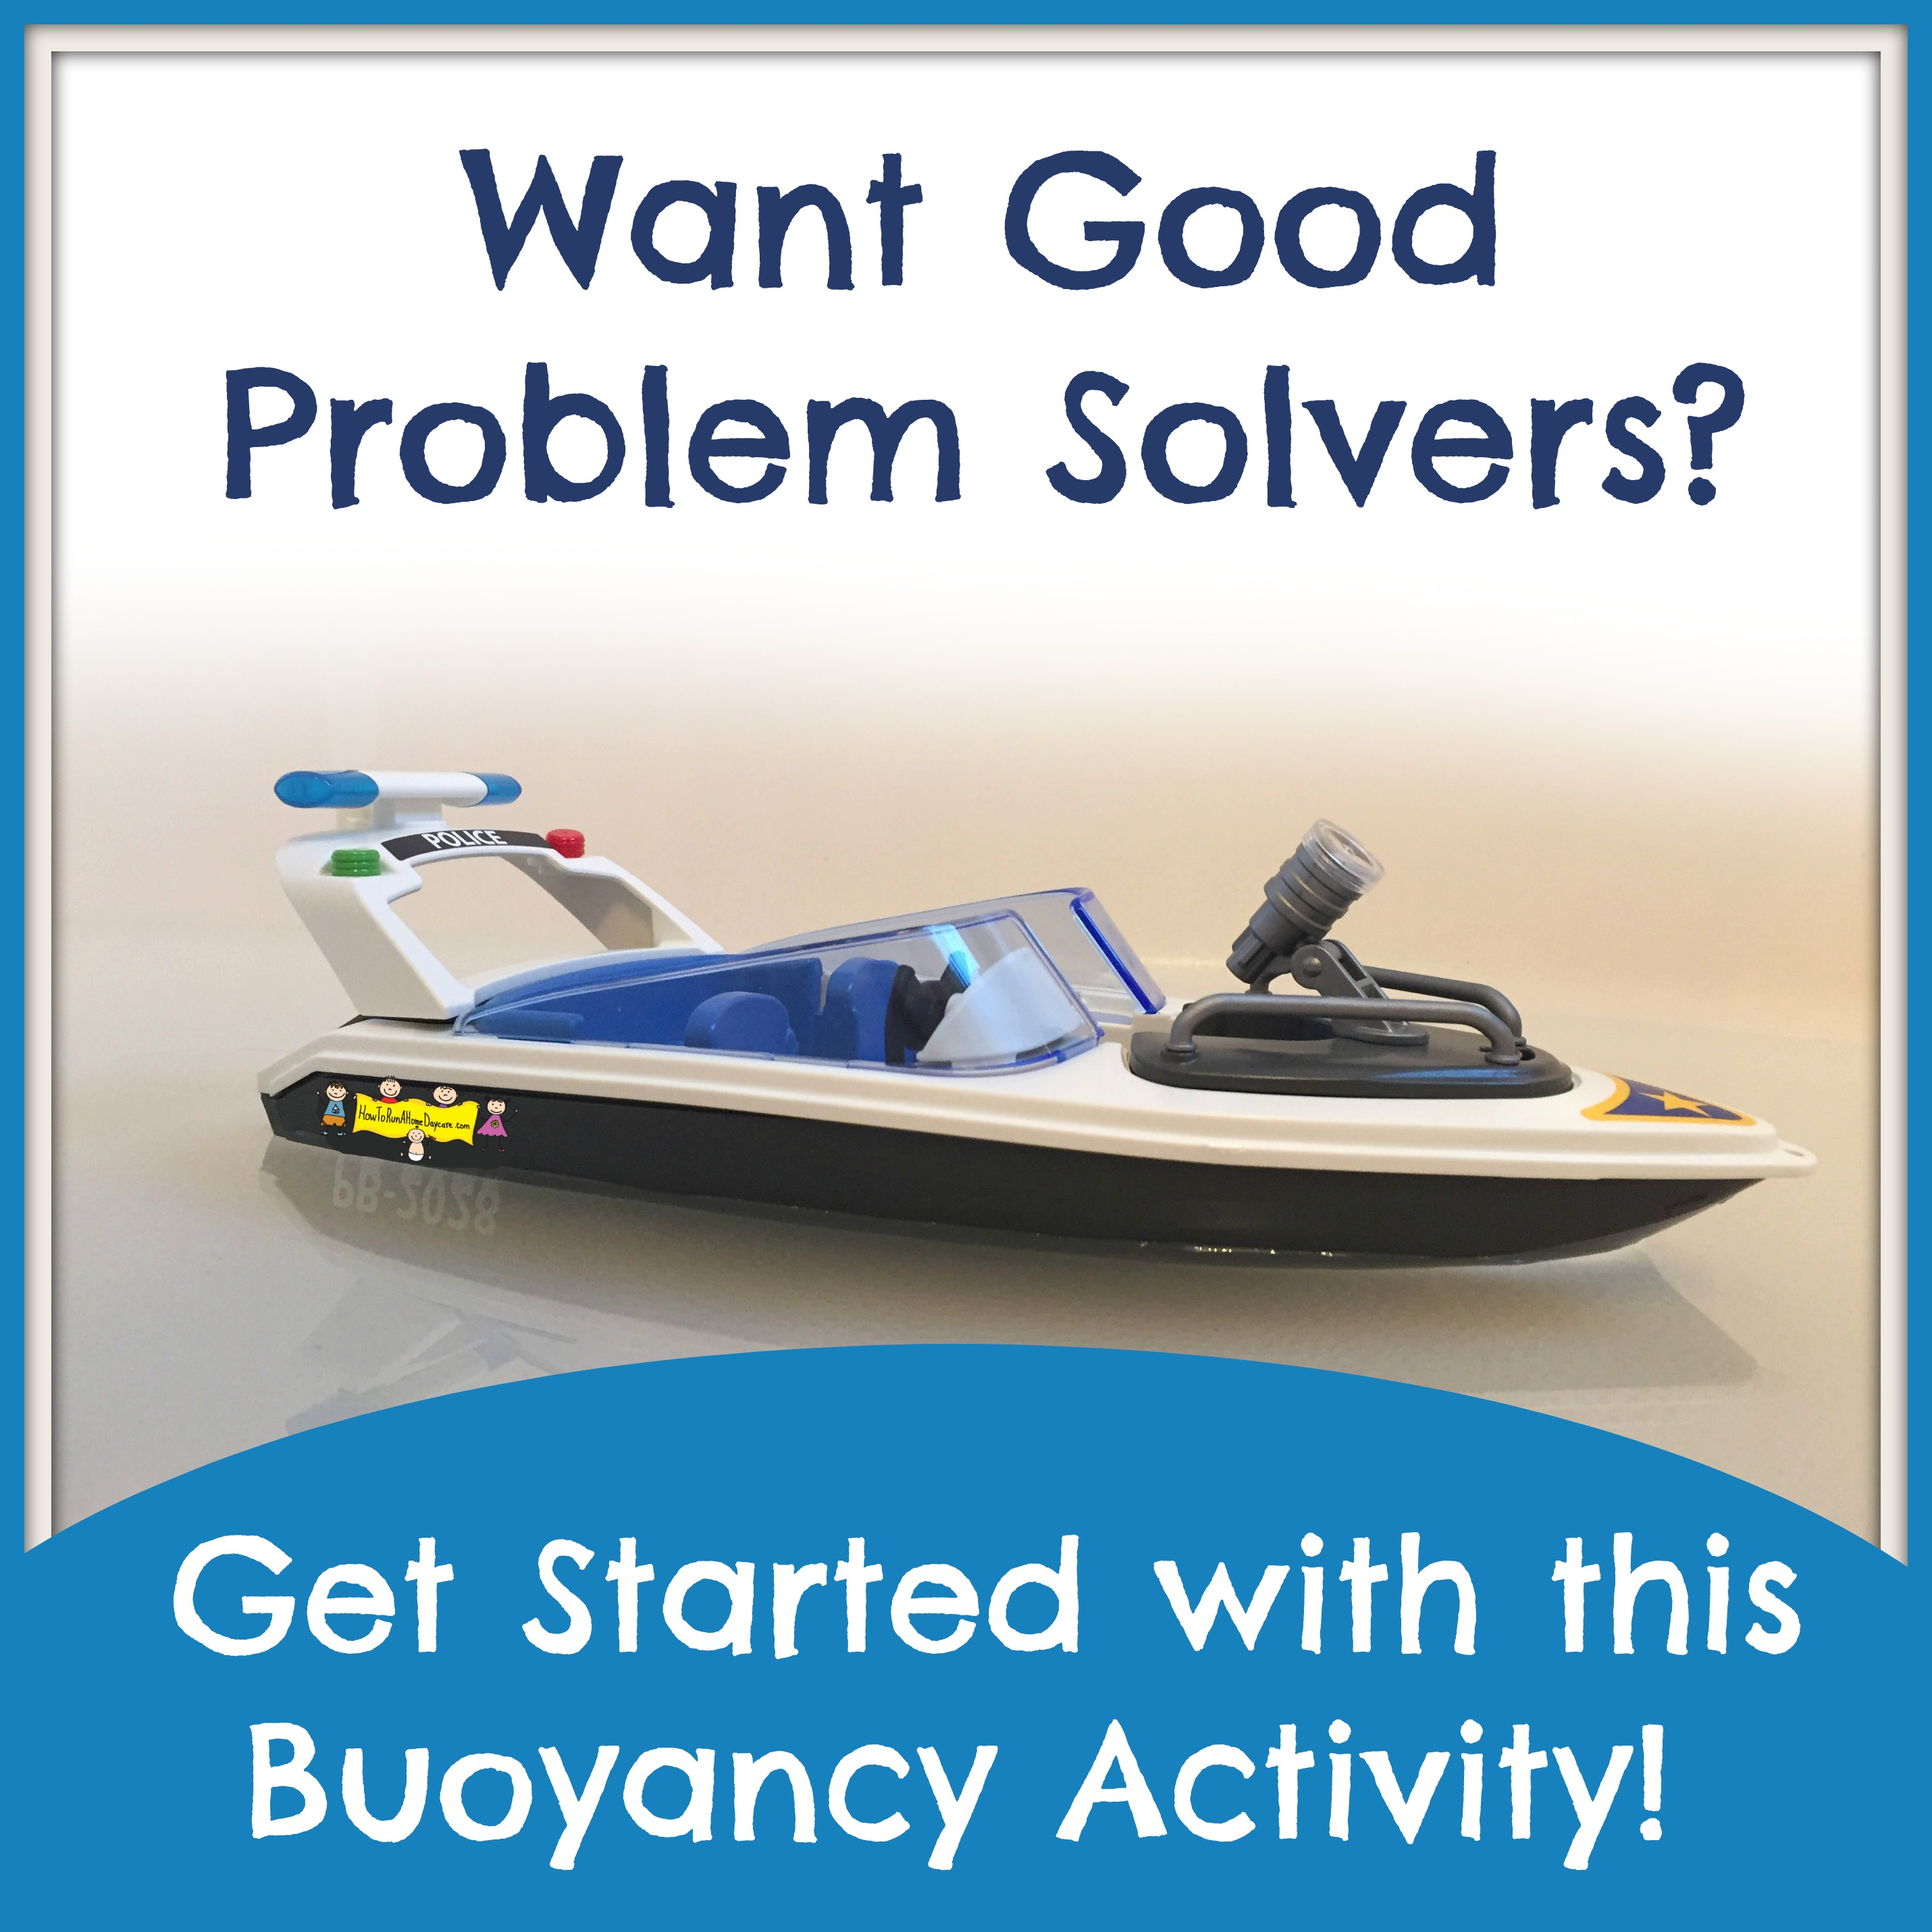 Want Good Problem Solvers Get Started With This Buoyancy